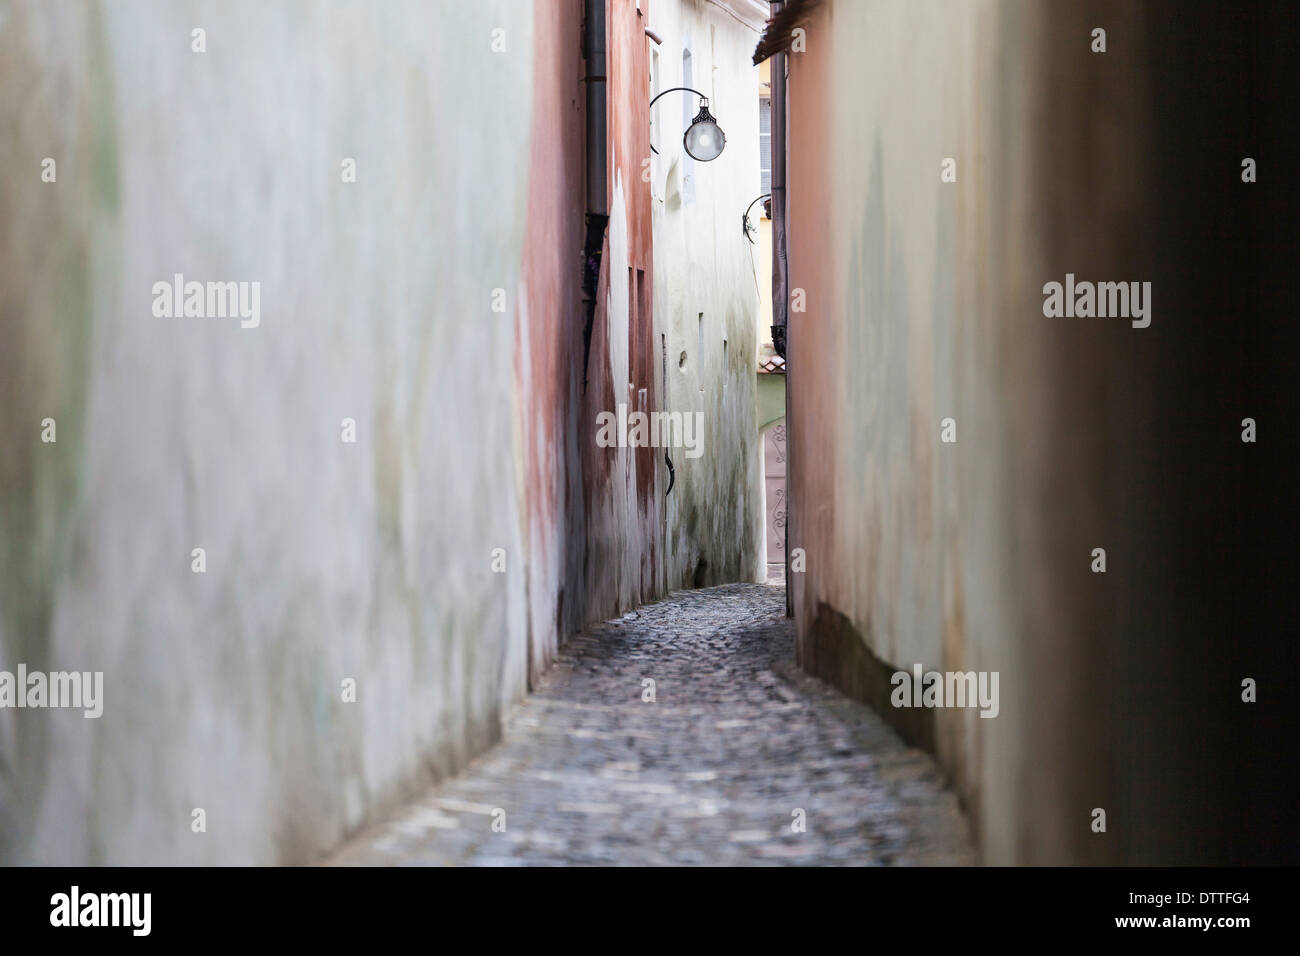 Streetlights hanging in alley - Stock Image